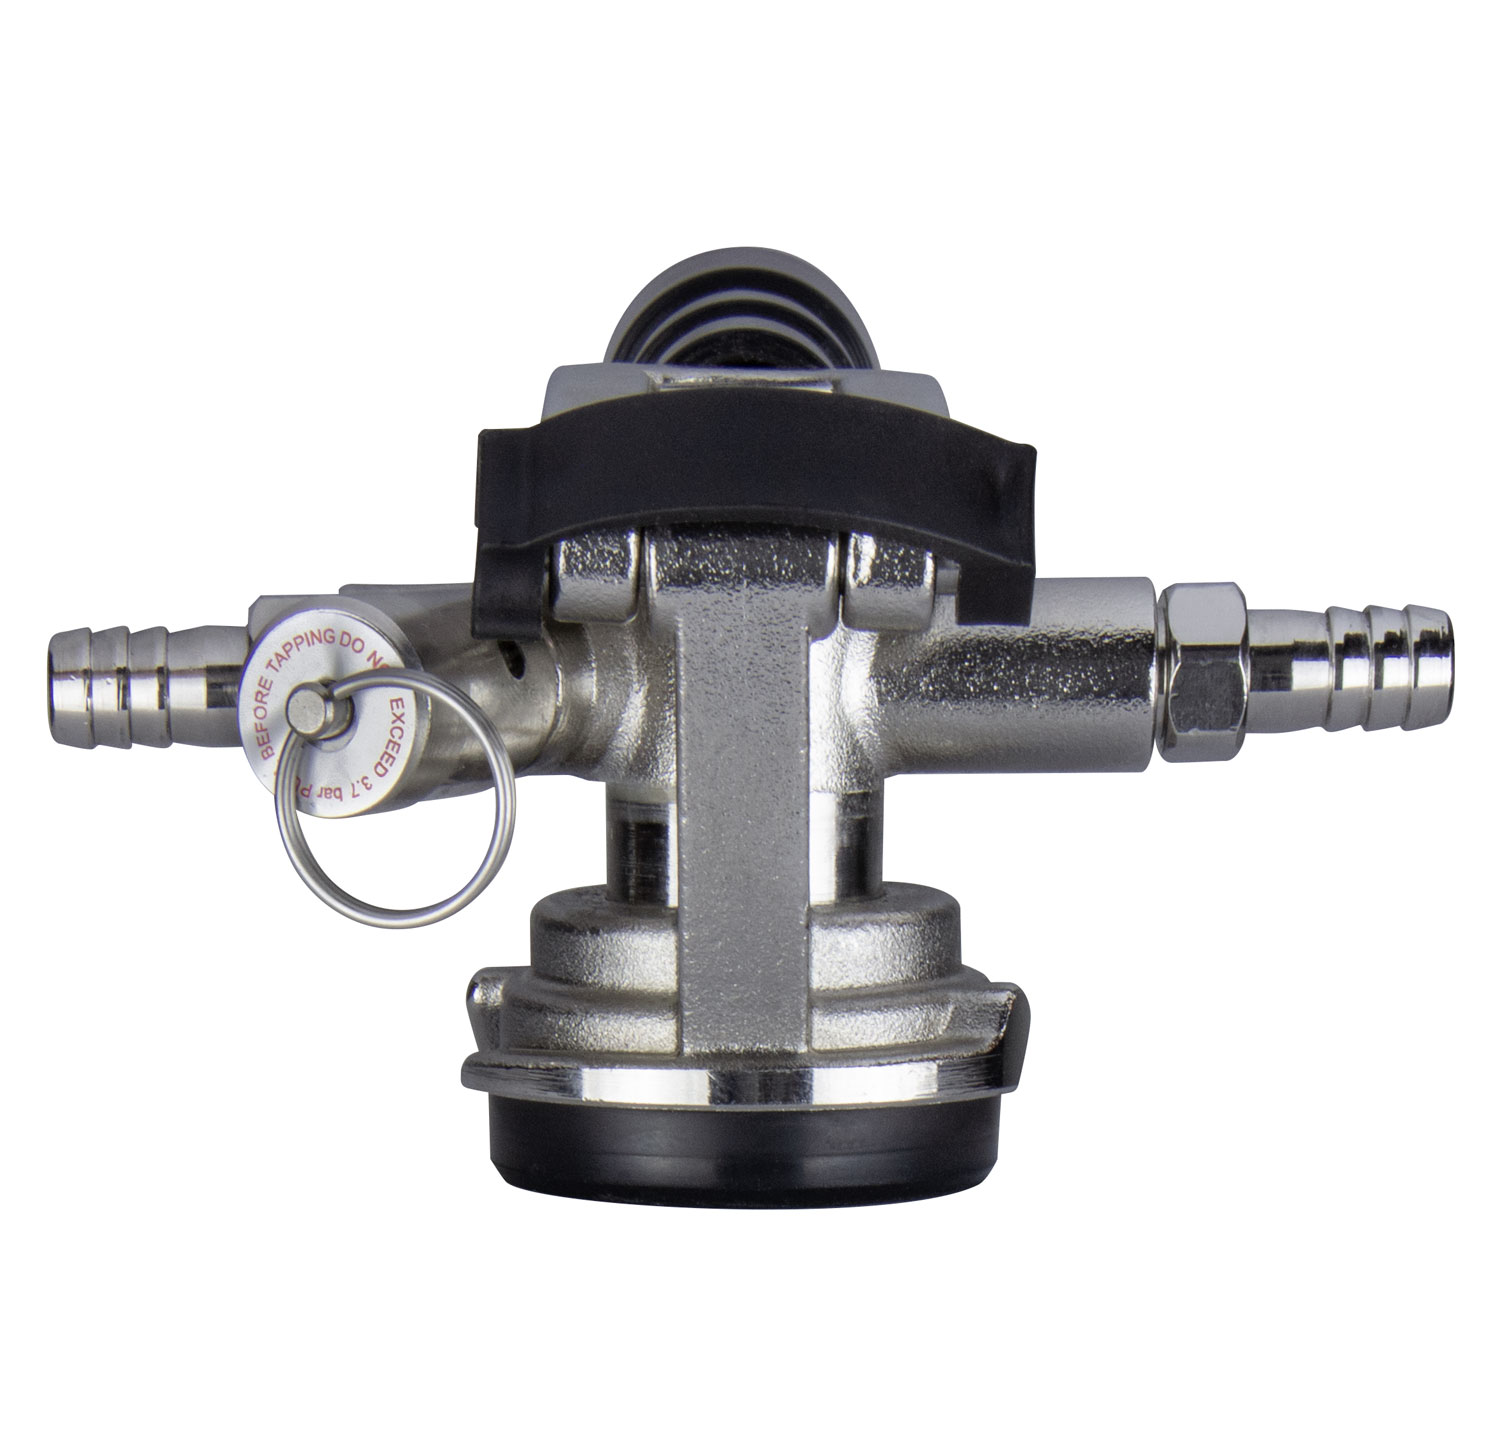 hight resolution of kegco kt41d lp low profile d system keg tap coupler